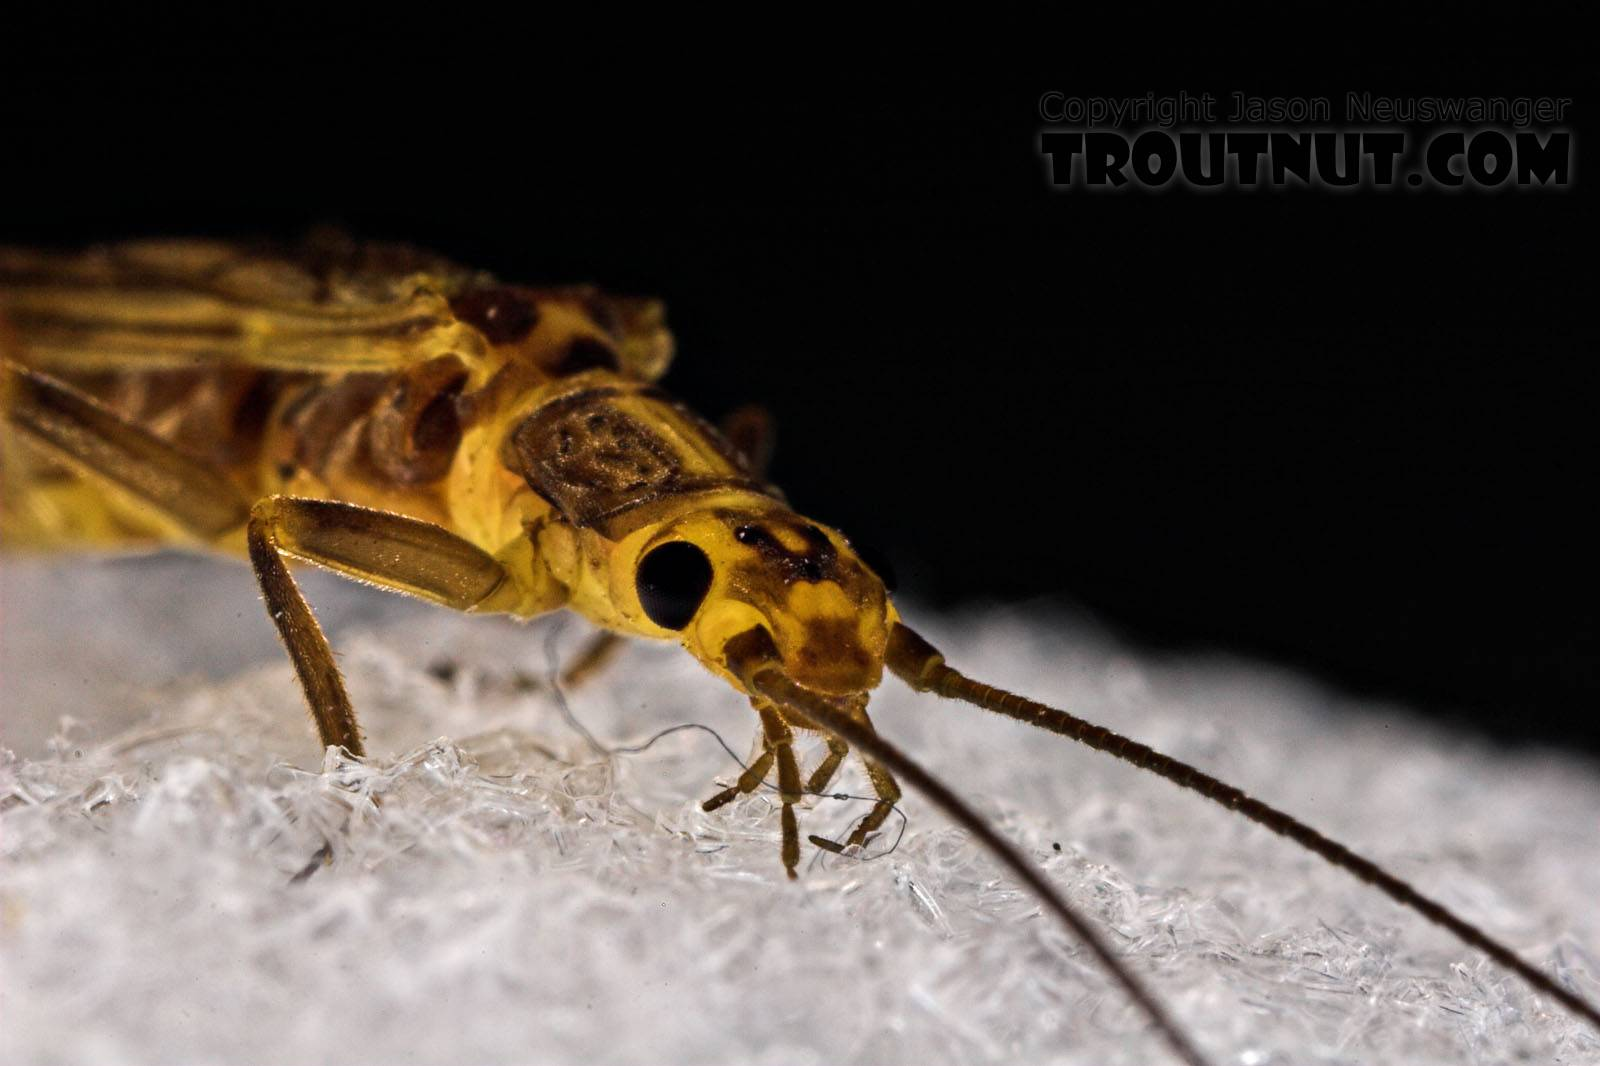 Isoperla (Stripetails and Yellow Stones) Stonefly Adult from Cayuta Creek in New York